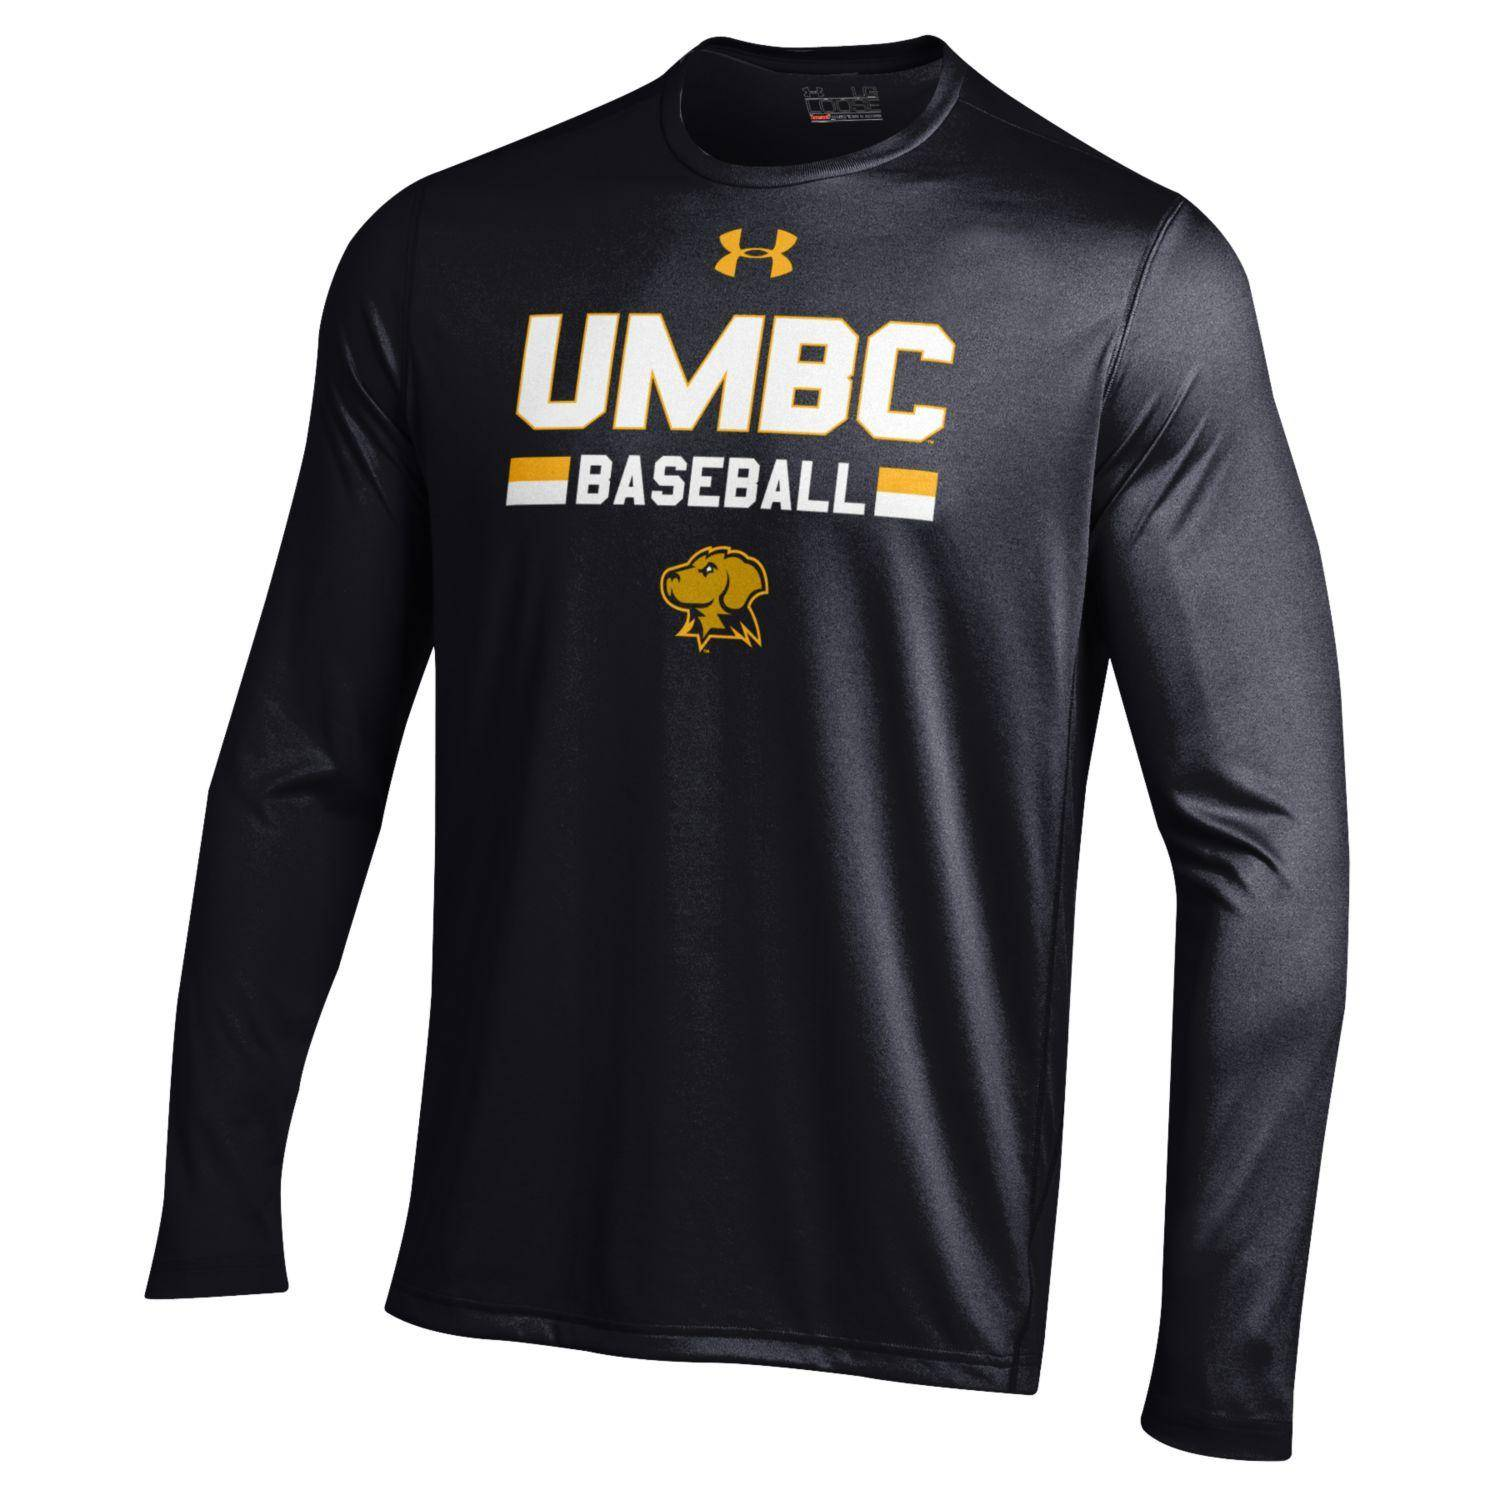 903b9a299 Image For BASEBALL UNDER ARMOUR UMBC LONG SLEEVE TECH